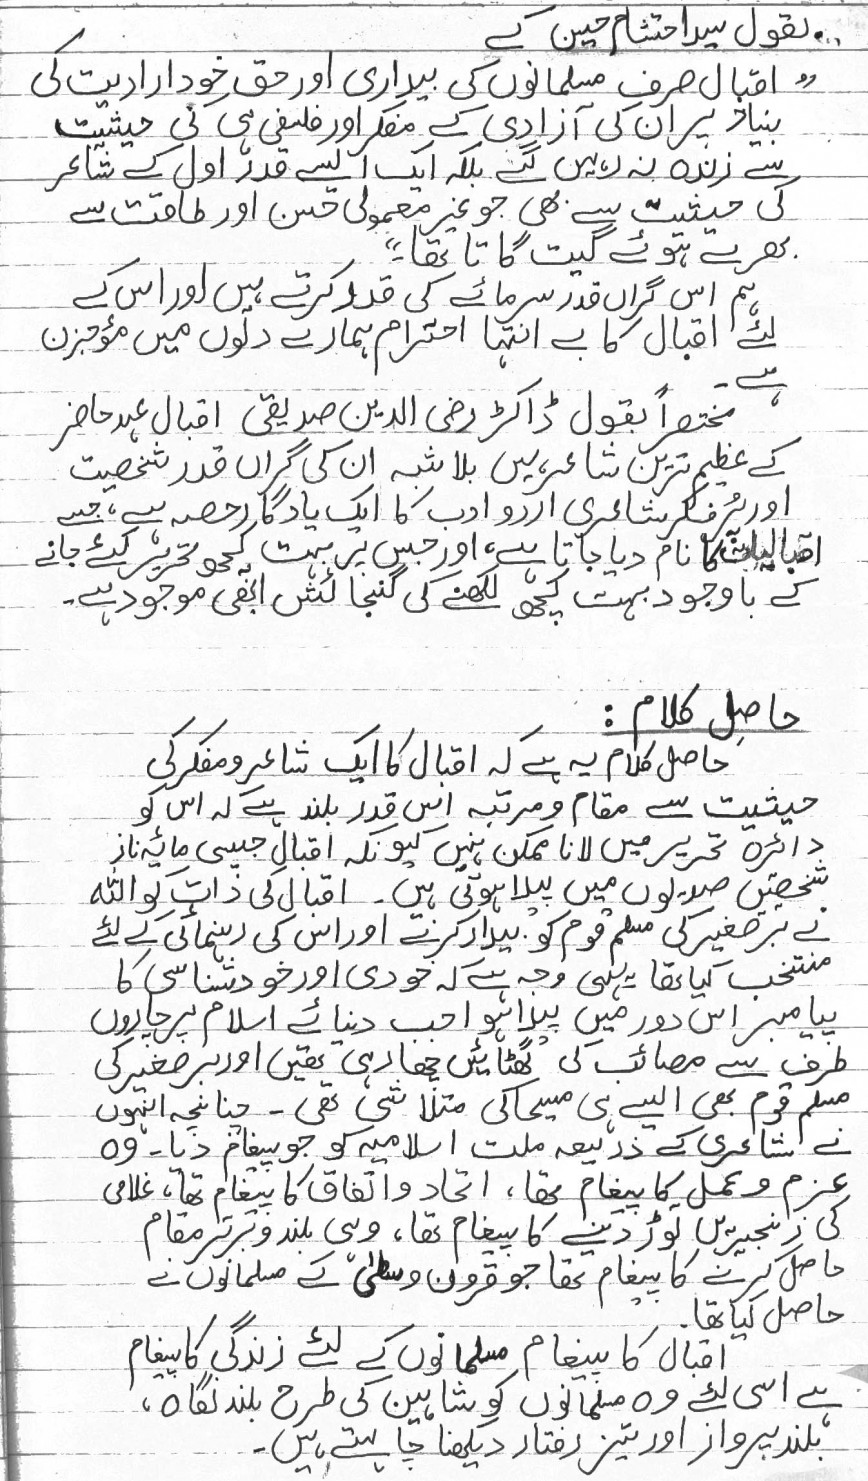 003 Jpg Urdu Essay Allama Iqbal Dreaded On In For Class 10 With Poetry Ka Shaheen Headings And 868